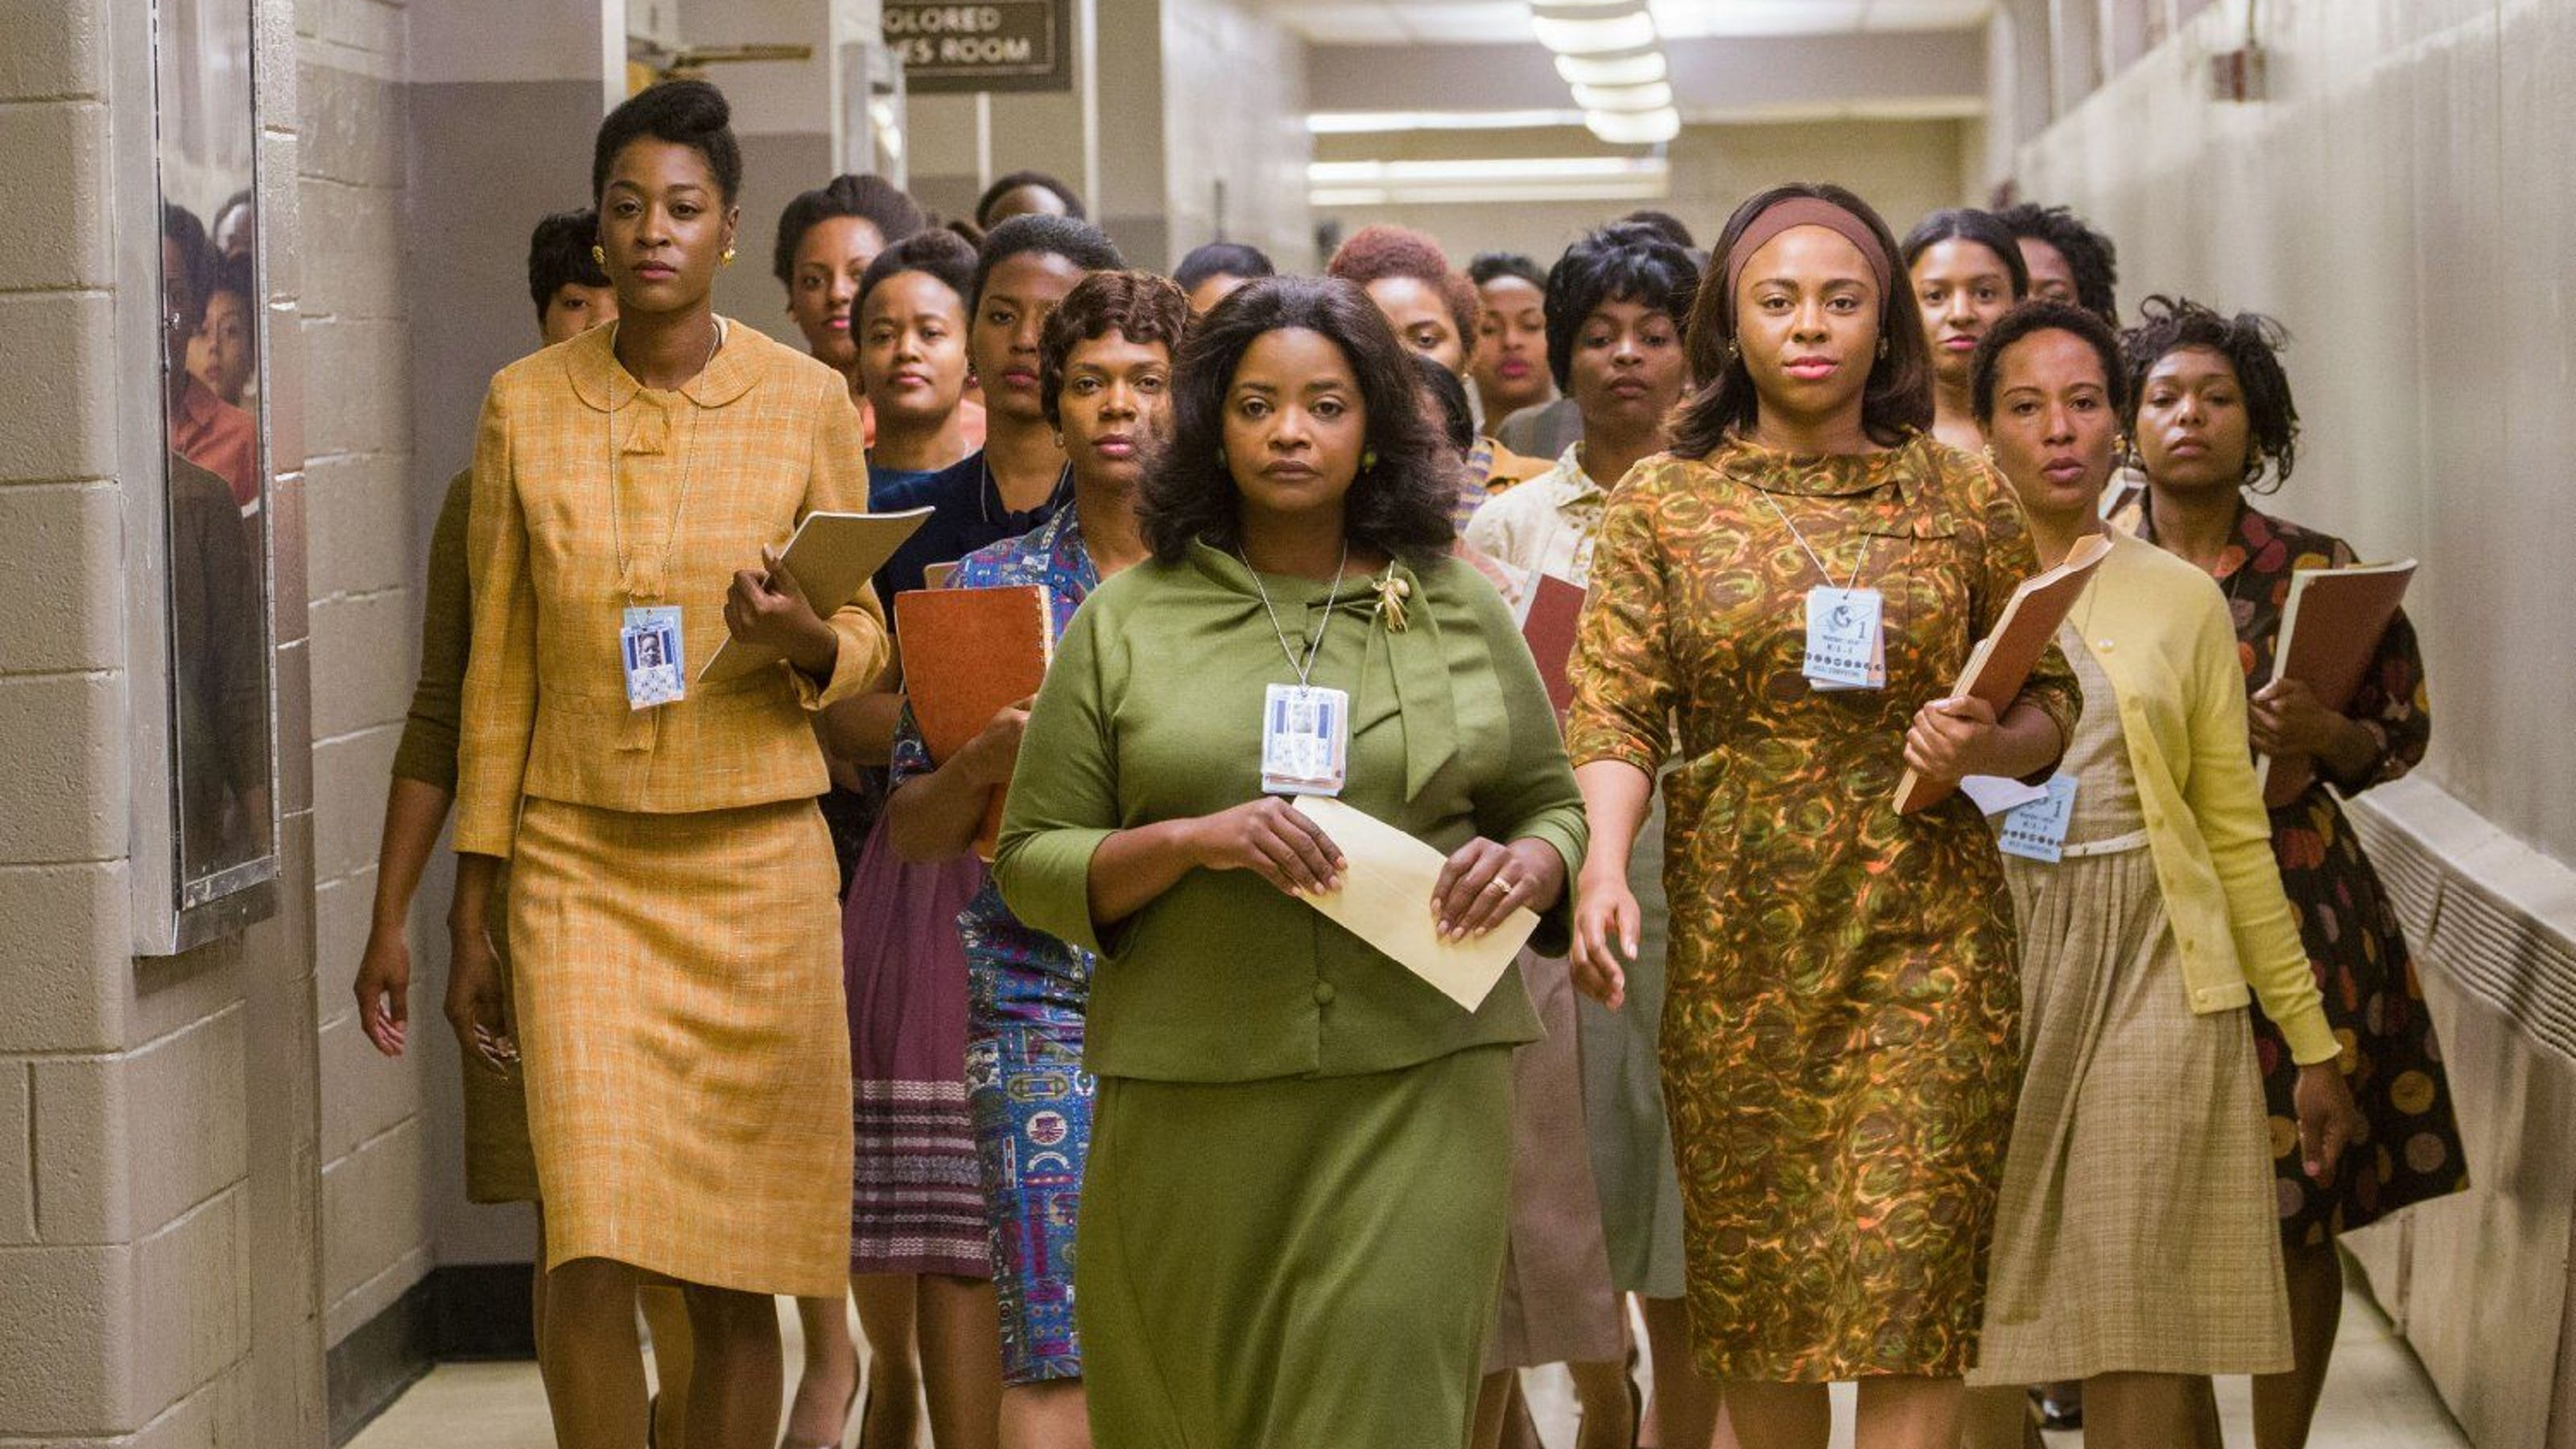 15 great movies for families to watch on Martin Luther King Jr. Day